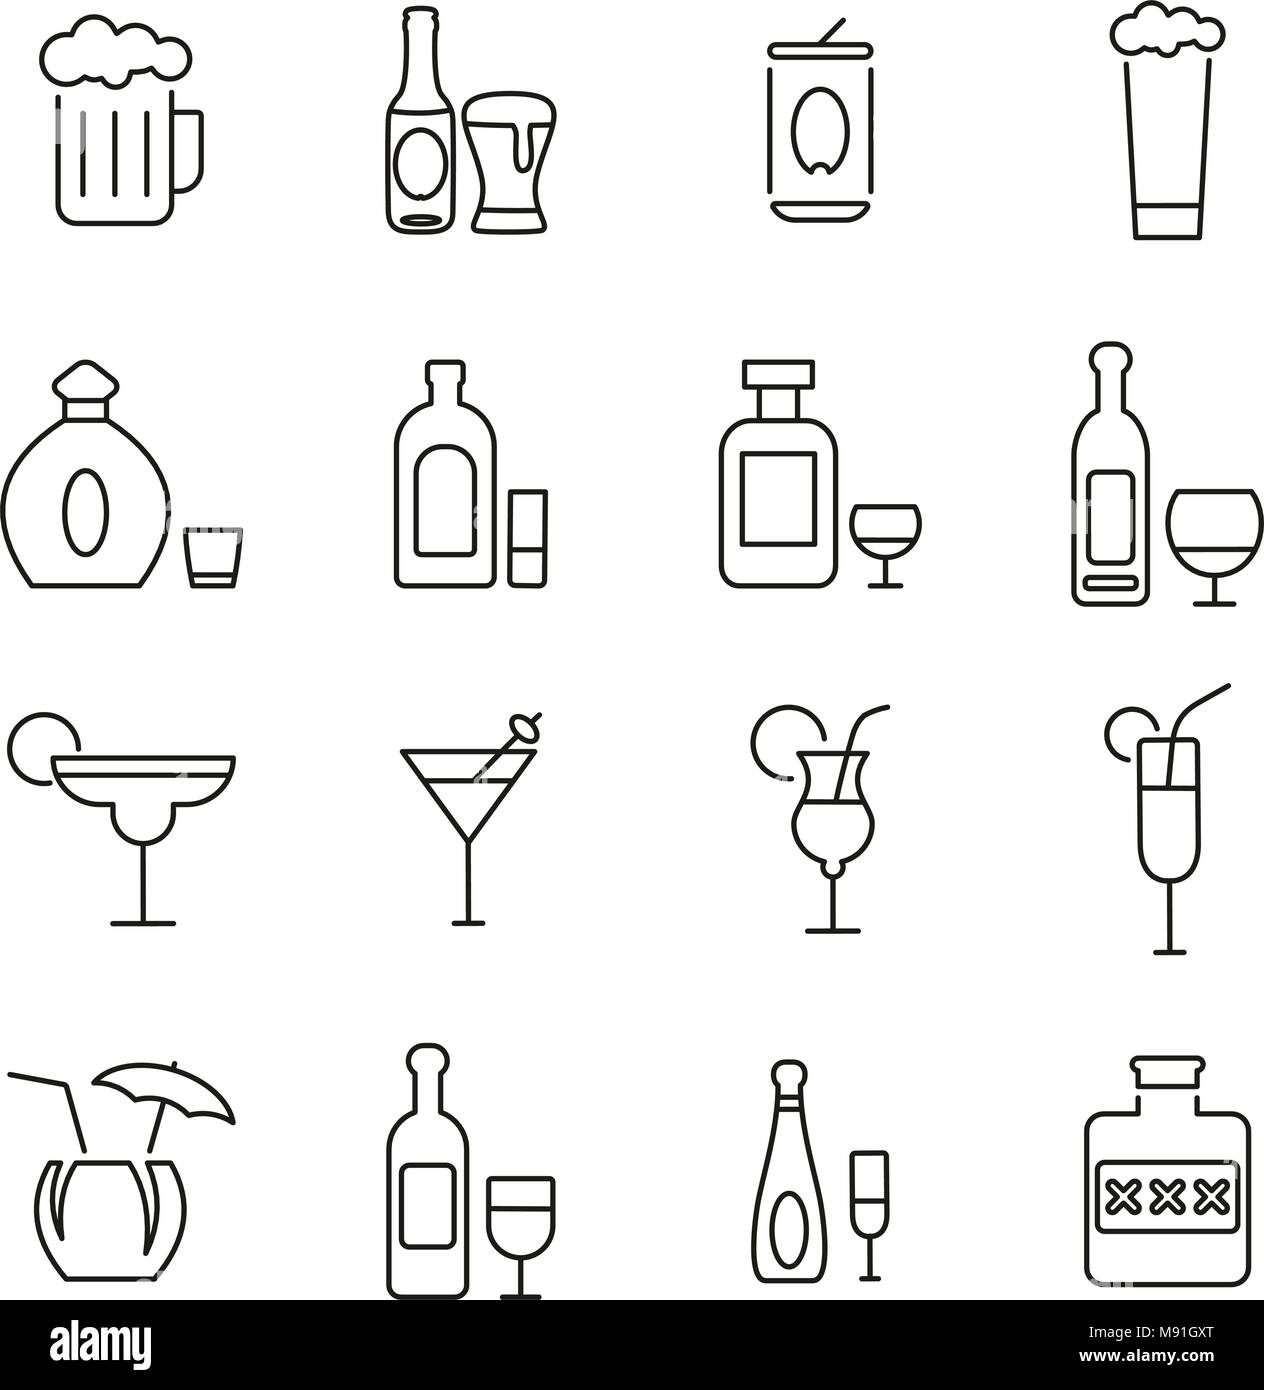 Alcoholic Drinks Icons Thin Line Vector Illustration Set Stock Vector